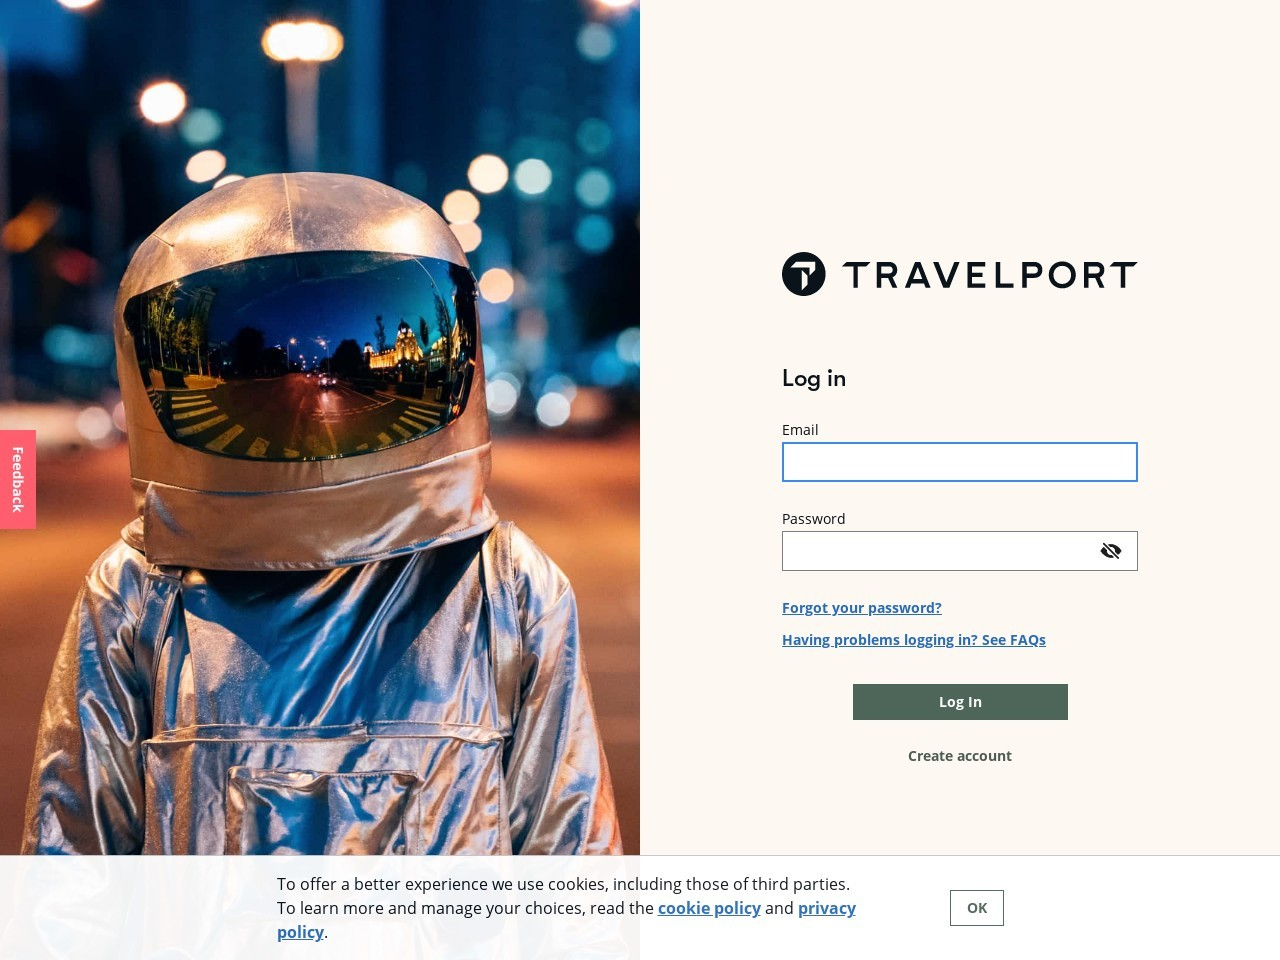 https://developer.travelport.com/app/developer-network/universal-api